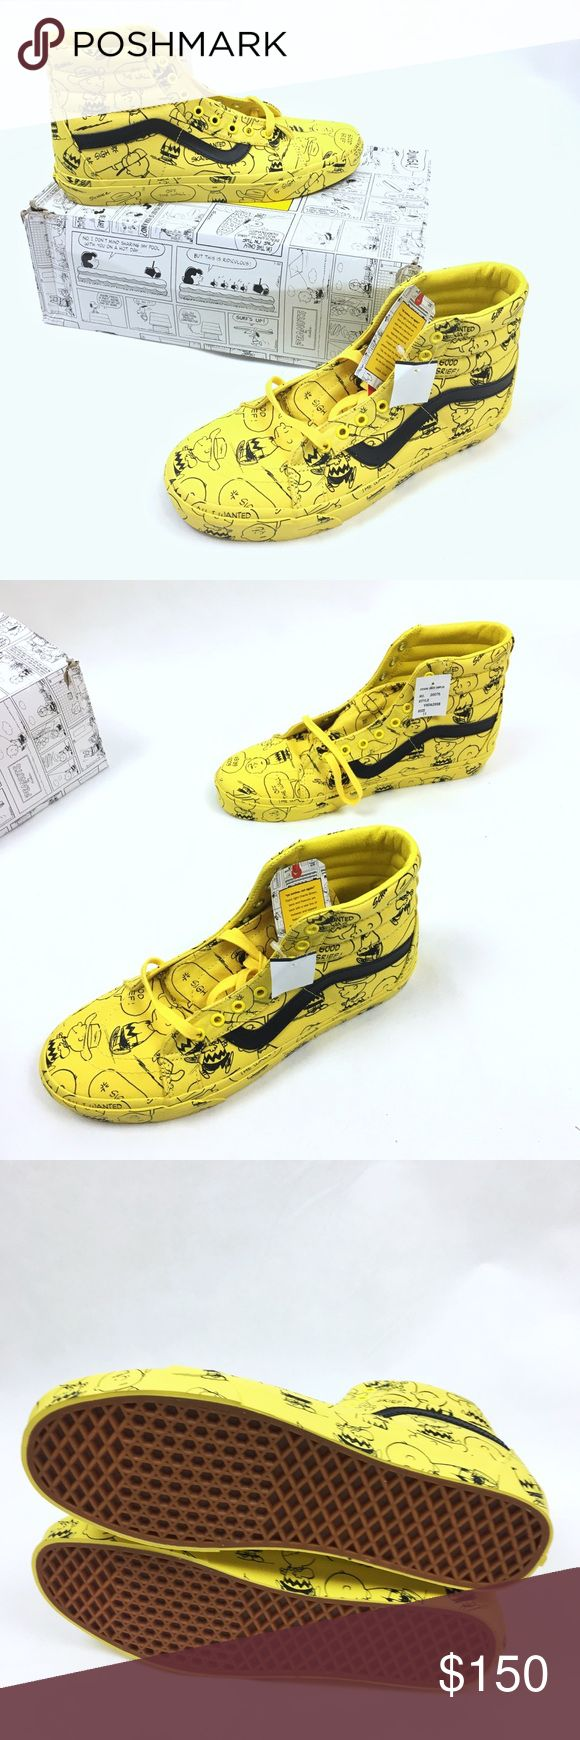 Vans Sk-8 Charlie Brown High Tops Maize Peanuts Brand new pair of unique high tops by VANs.  This is a great collaboration between two great brands.  Sizes available 7, 7.5 Vans Shoes Sneakers